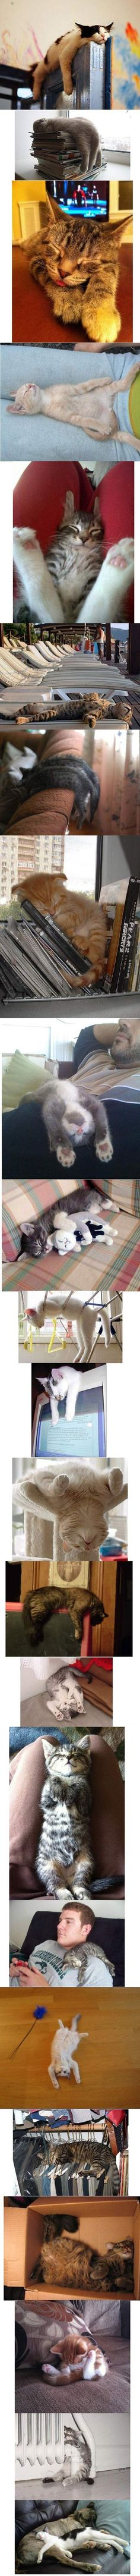 Great sleeping cats pictures. I don't usually post cat pictures, but any owner will recognise these feats of gymnastics.